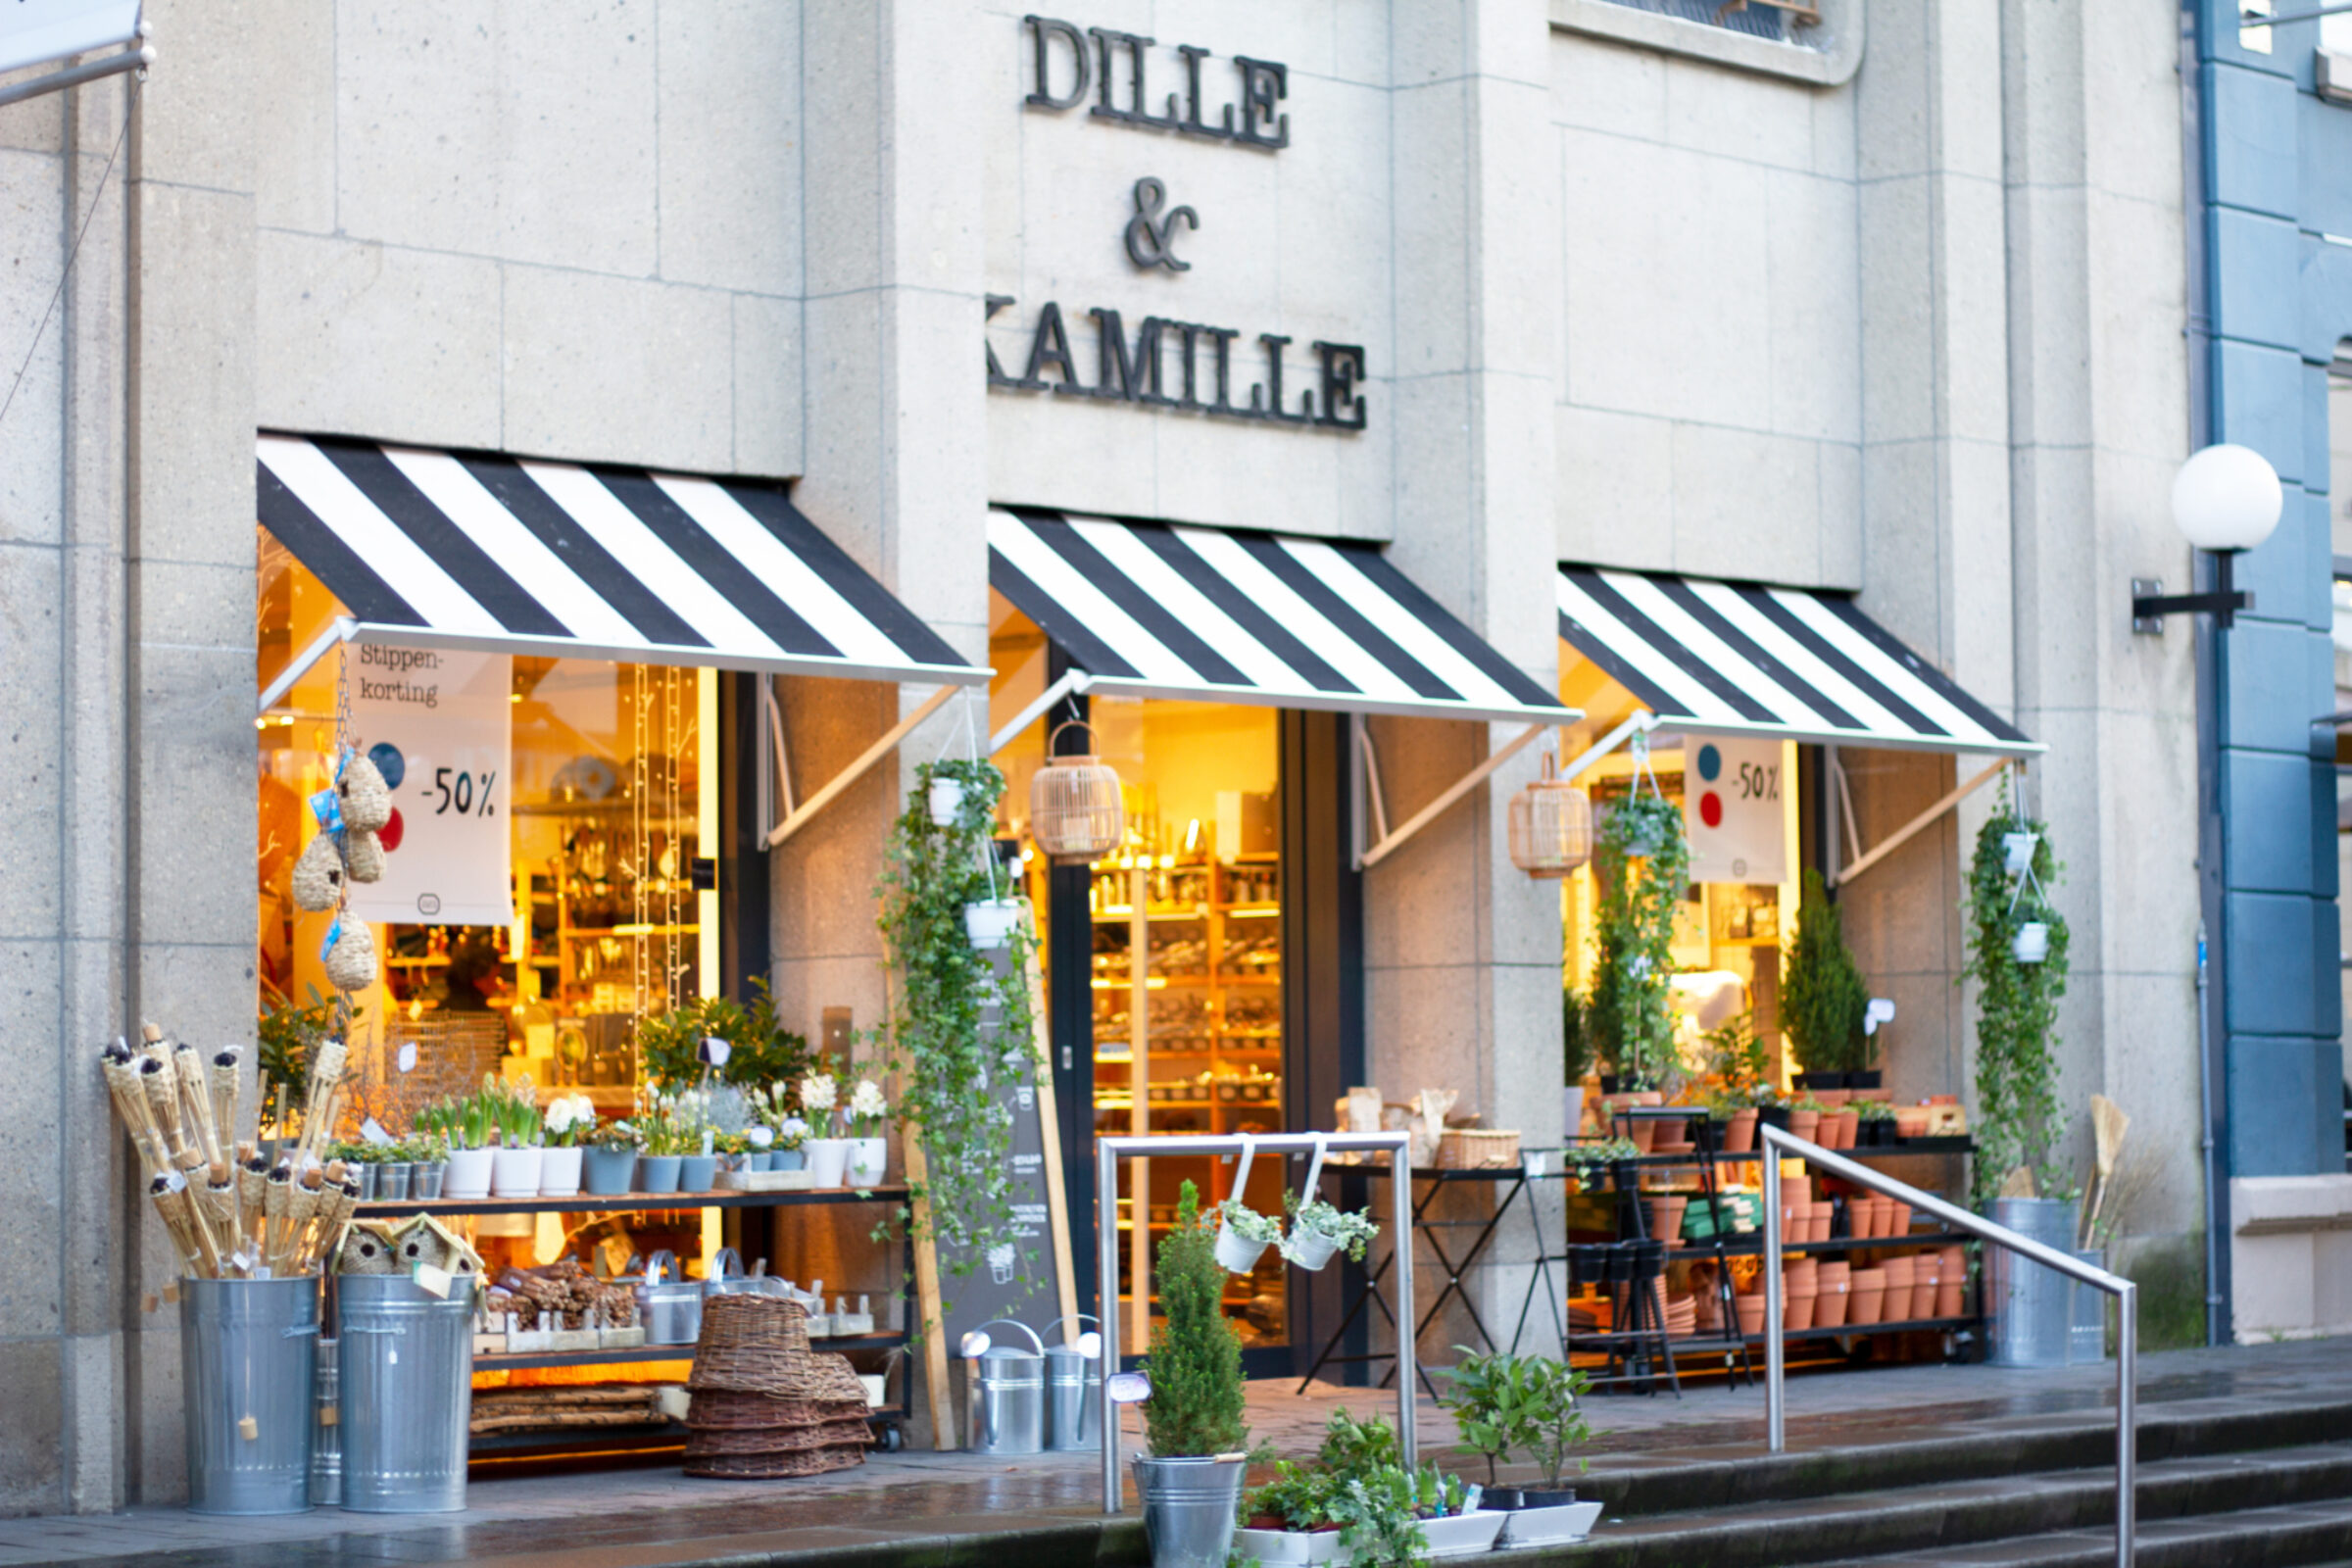 2020 Dille Kamille Enschede